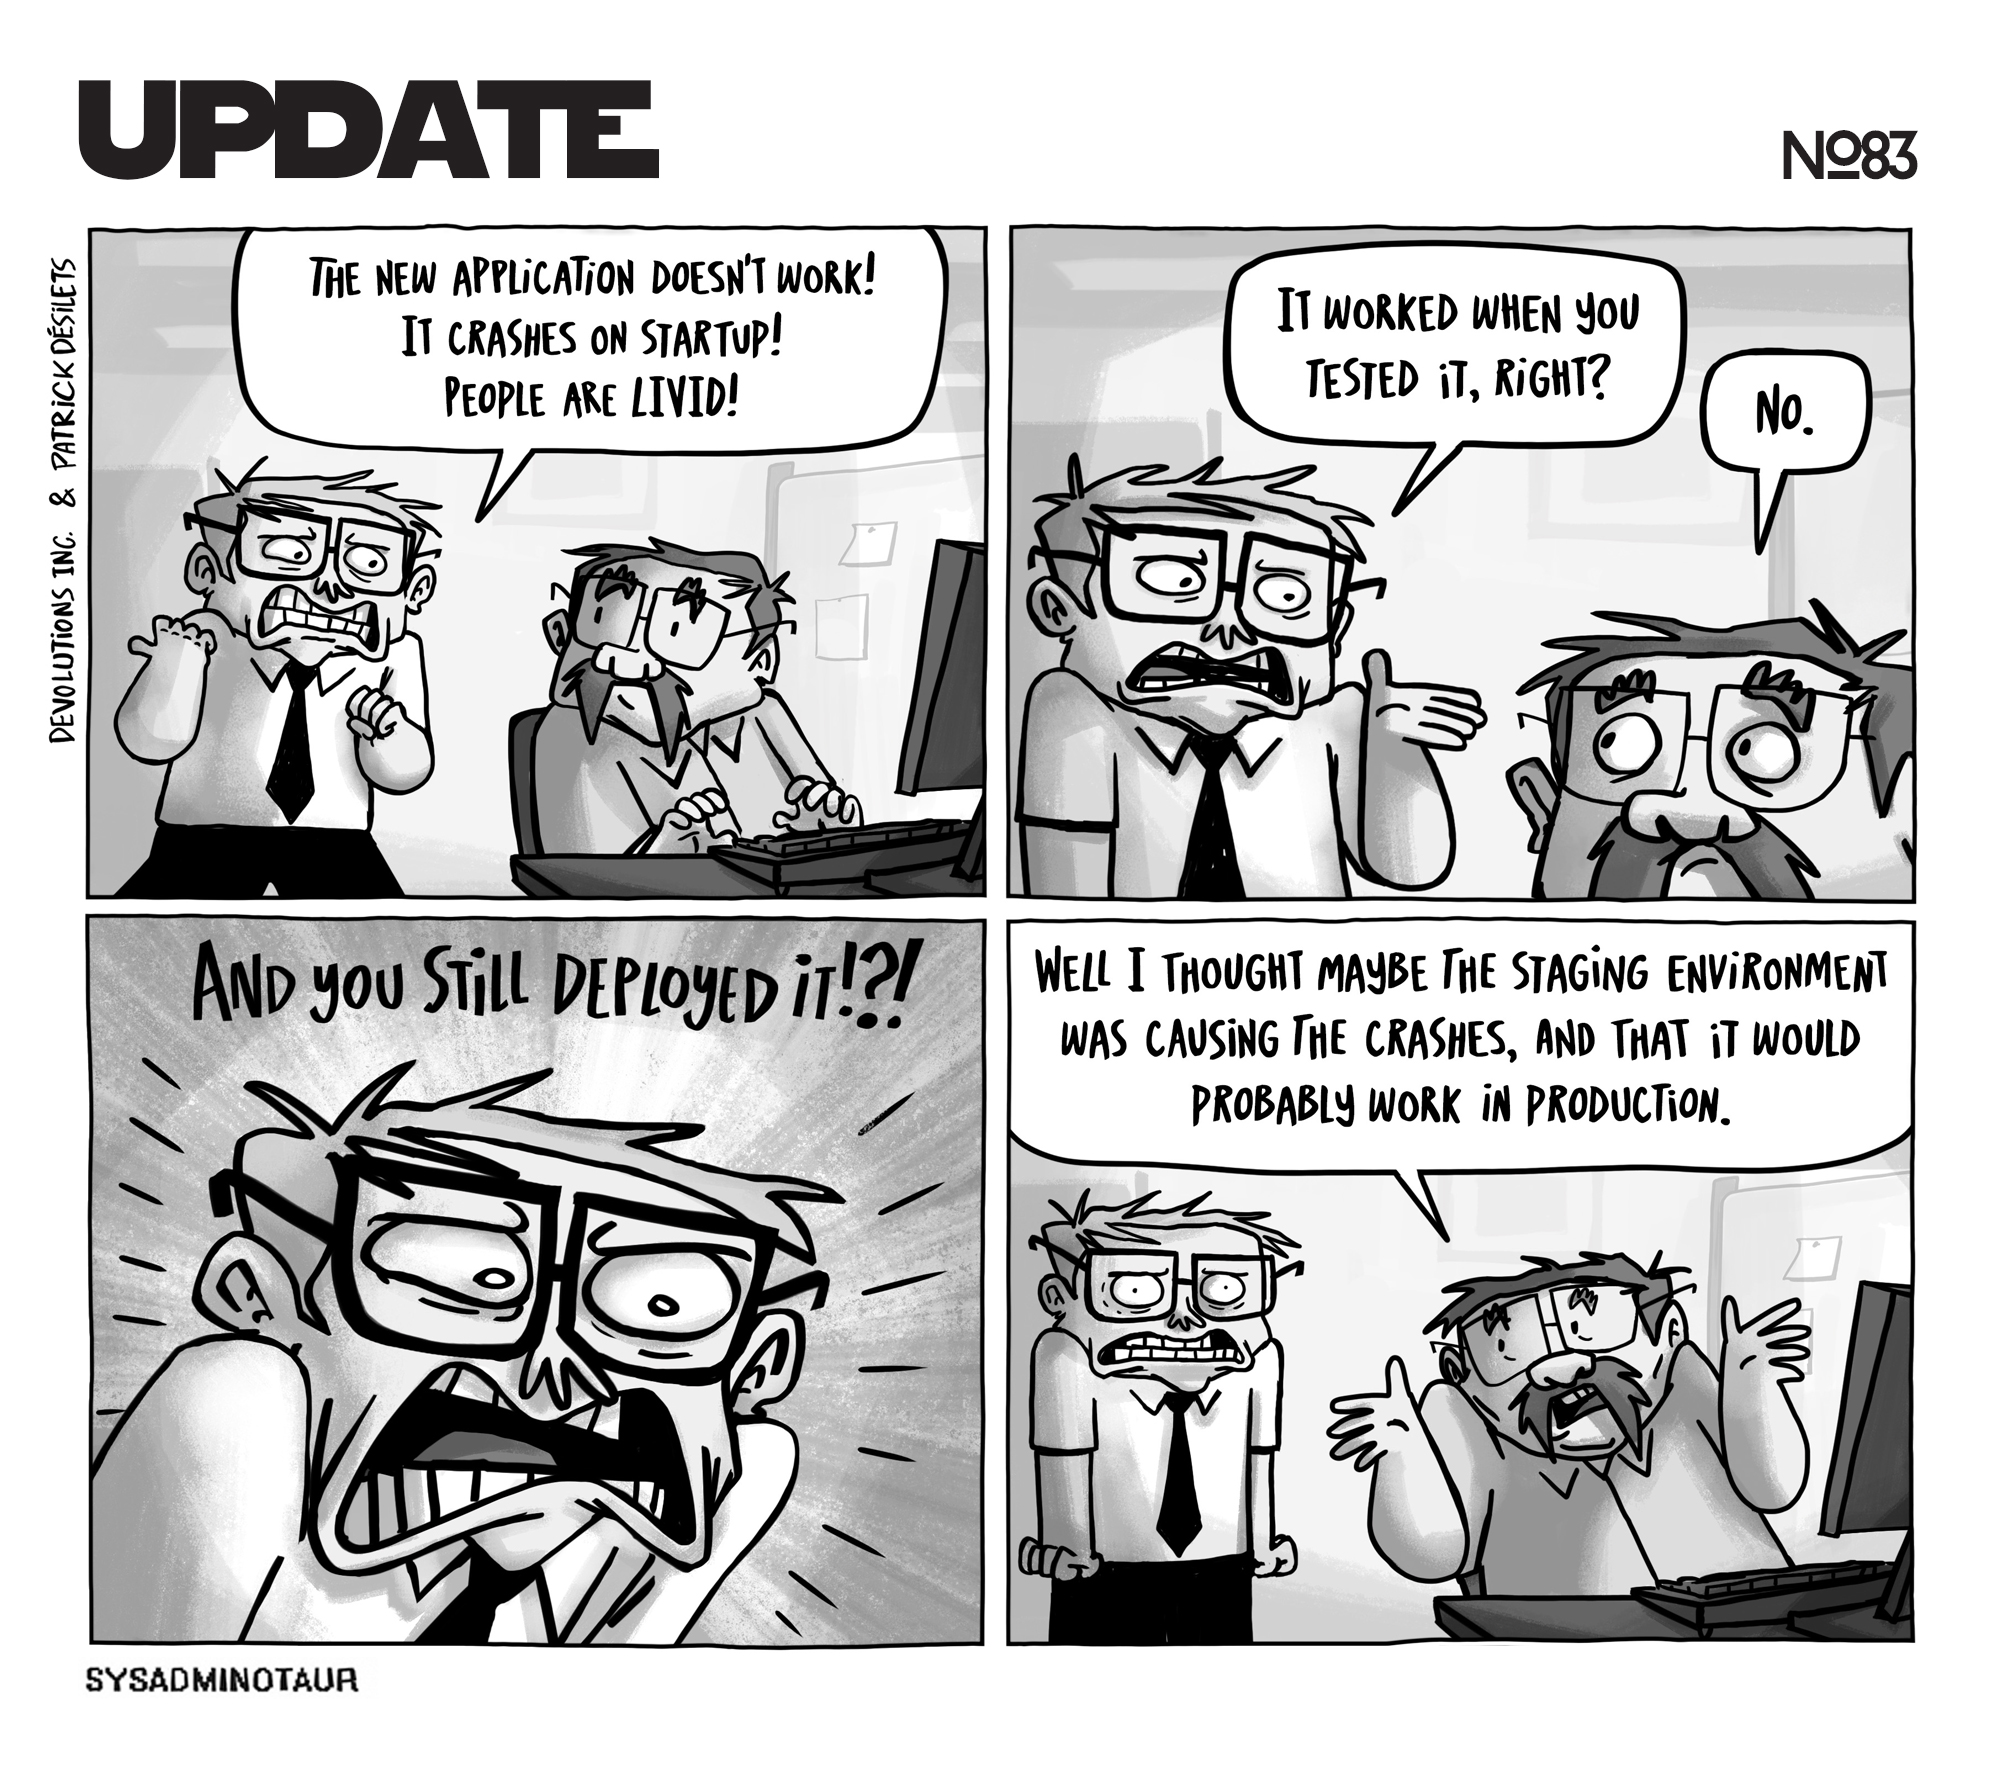 sysadminotaur-083-update